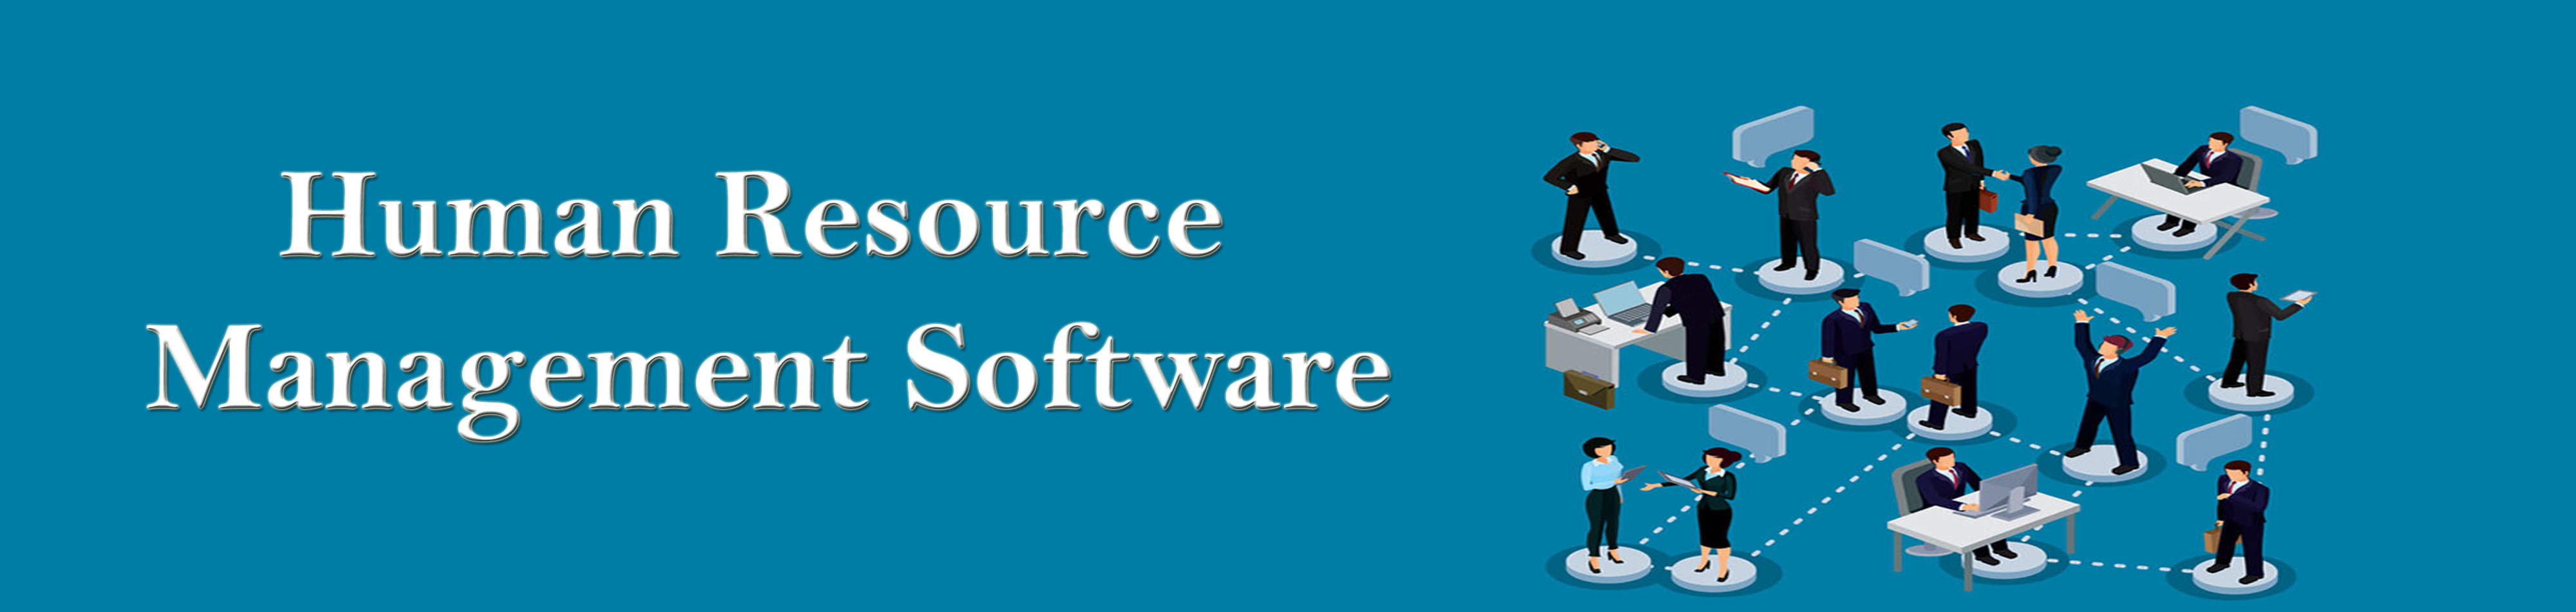 PAYROLL MANAGEMENT SOFTWARE IN CHENNAI